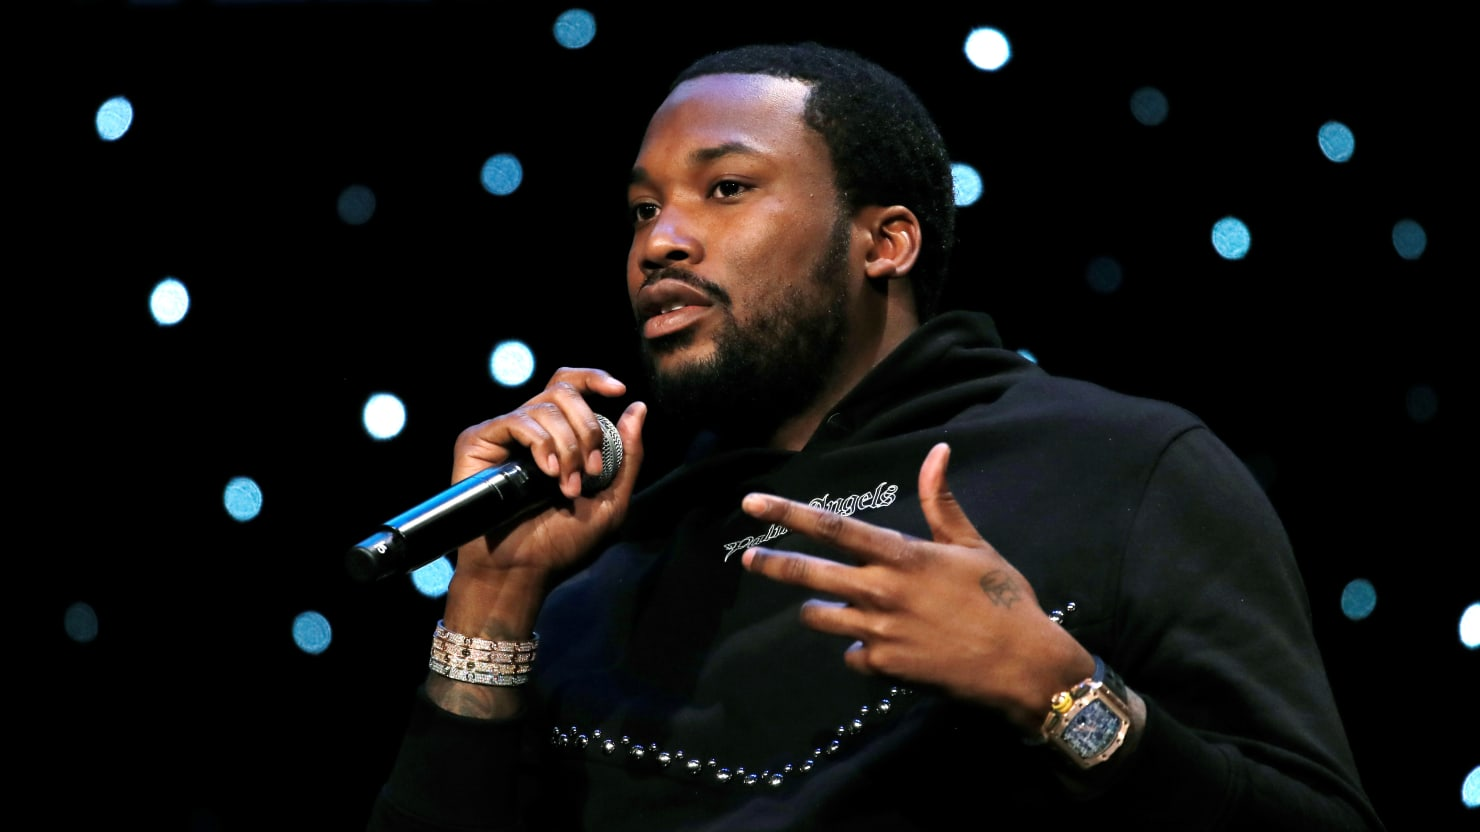 Las Vegas Hotel Caught on Video Refusing Entry to Rapper Meek Mill Without Providing a Reason